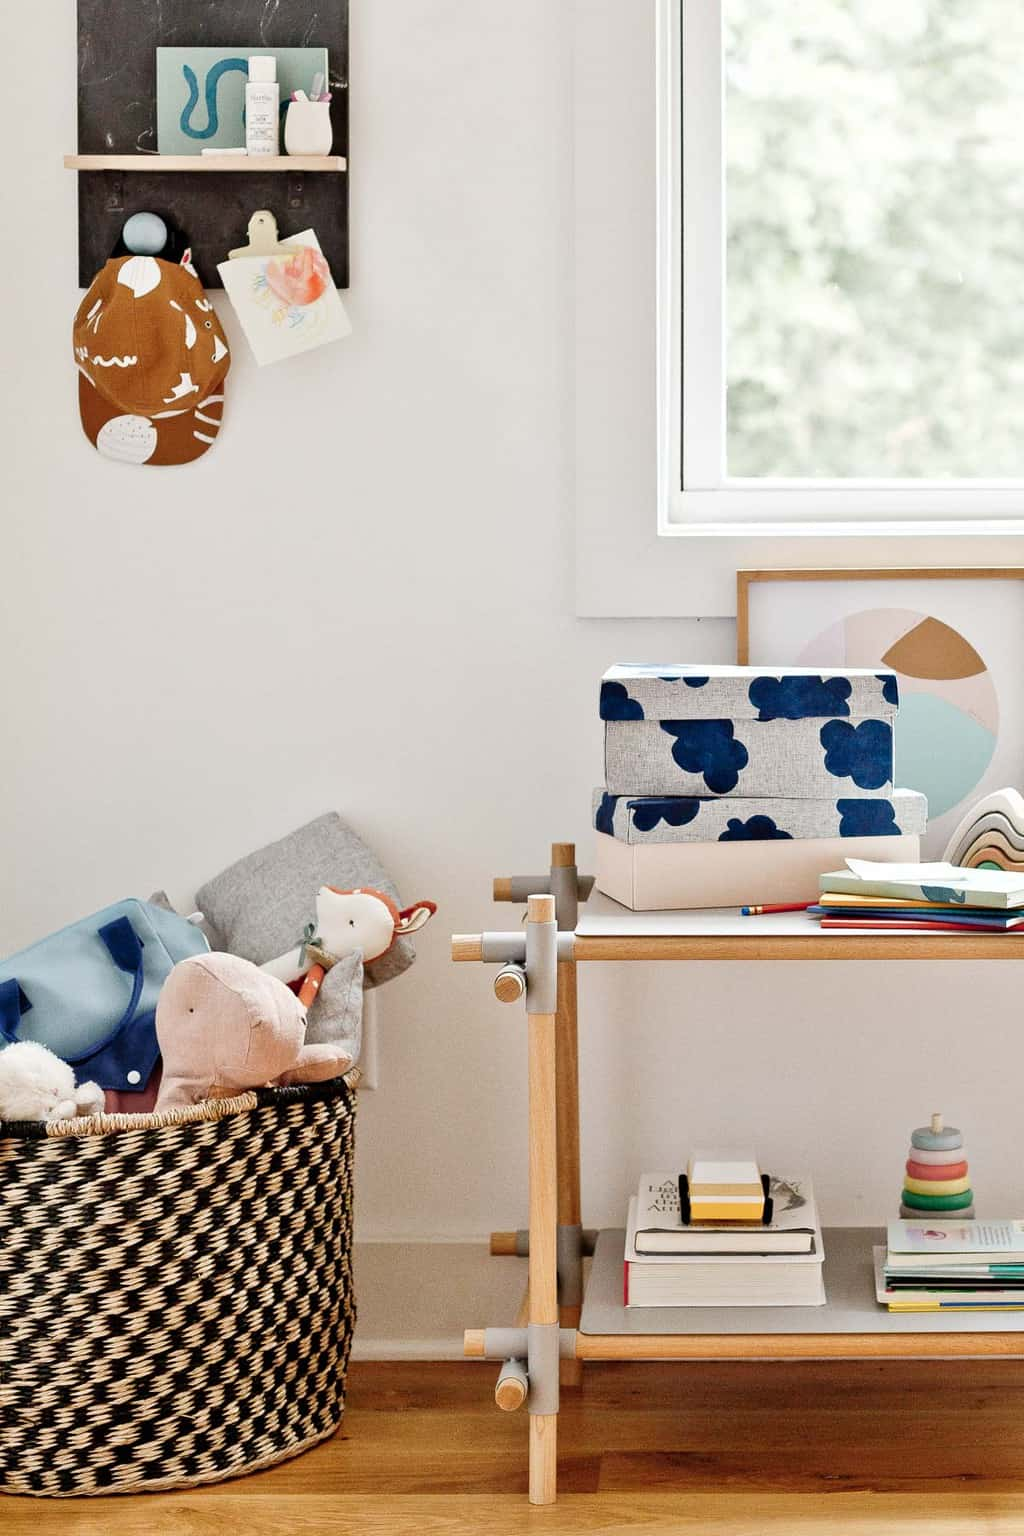 Image of a kids room with organization ideas that can be used in an office space.